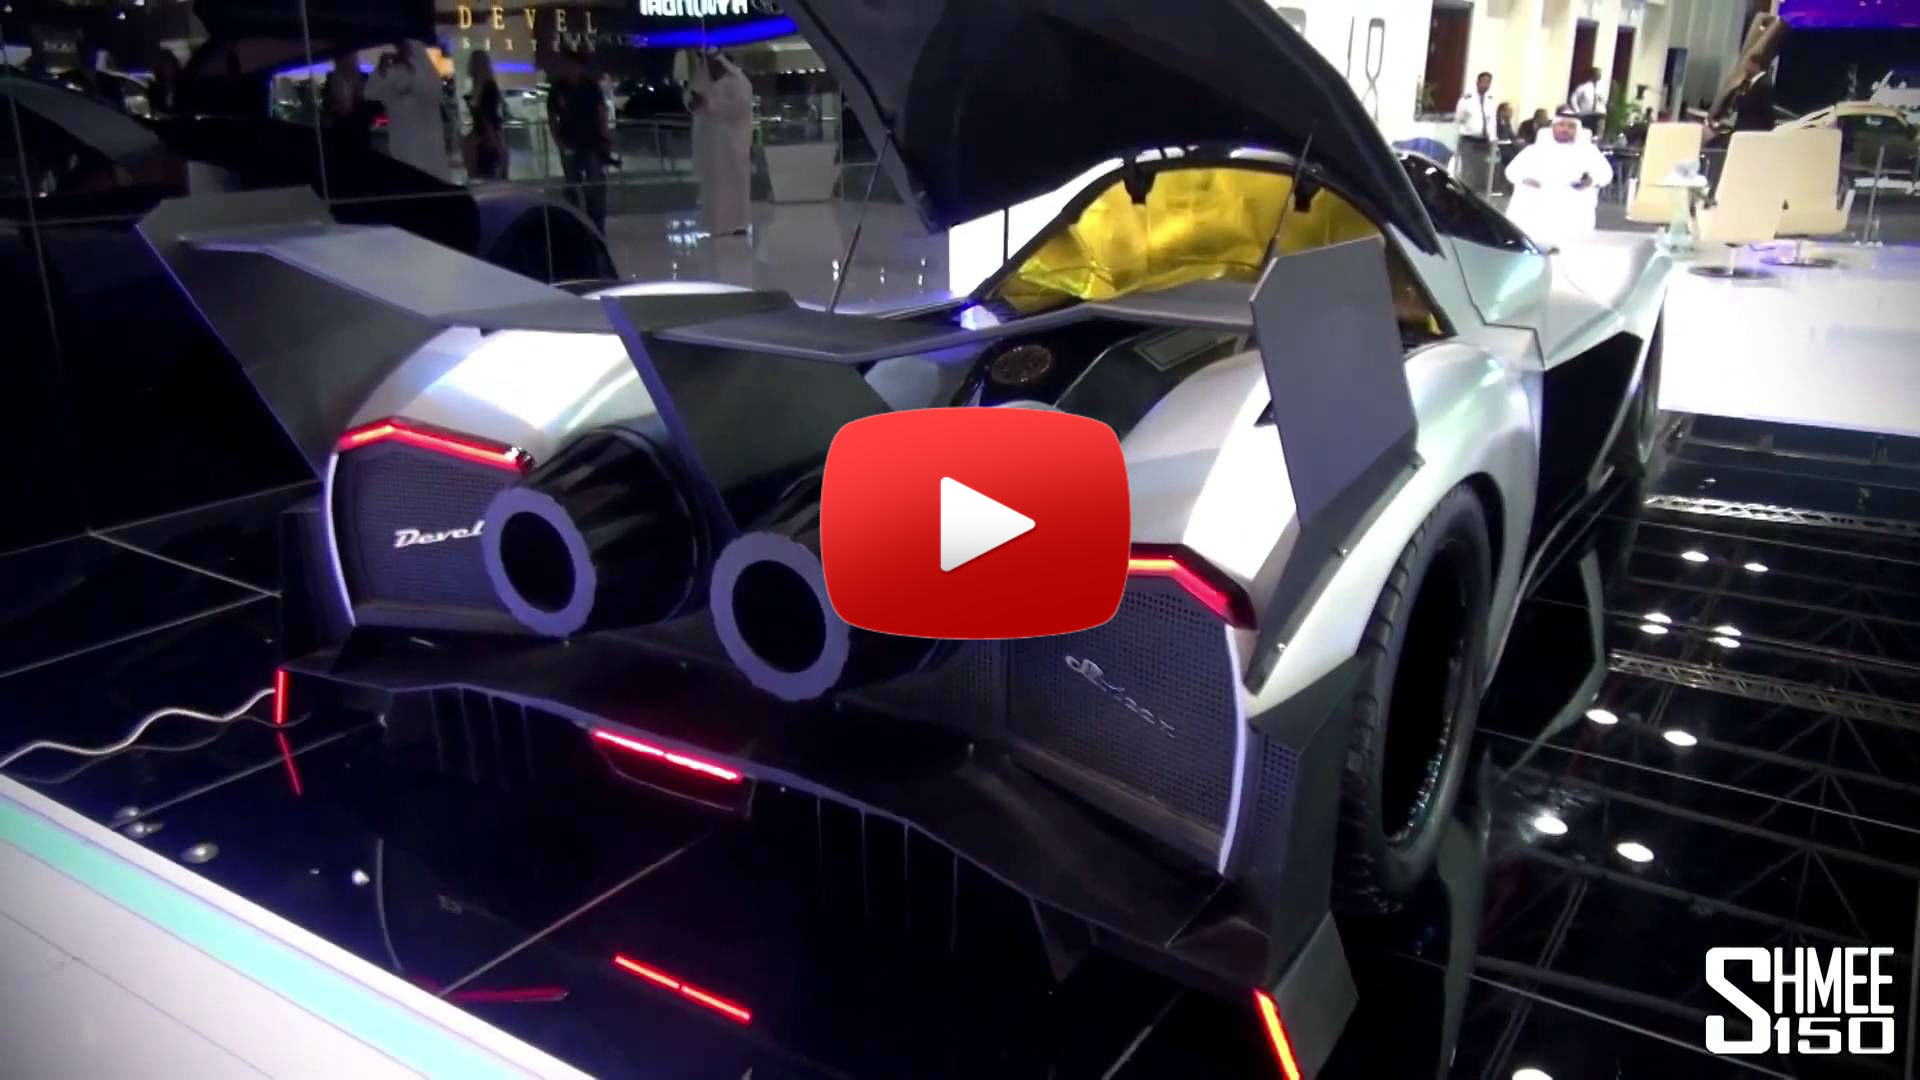 5 000hp Devel Sixteen V16 Crazy Supercar 0 62 Mph In 1 8s